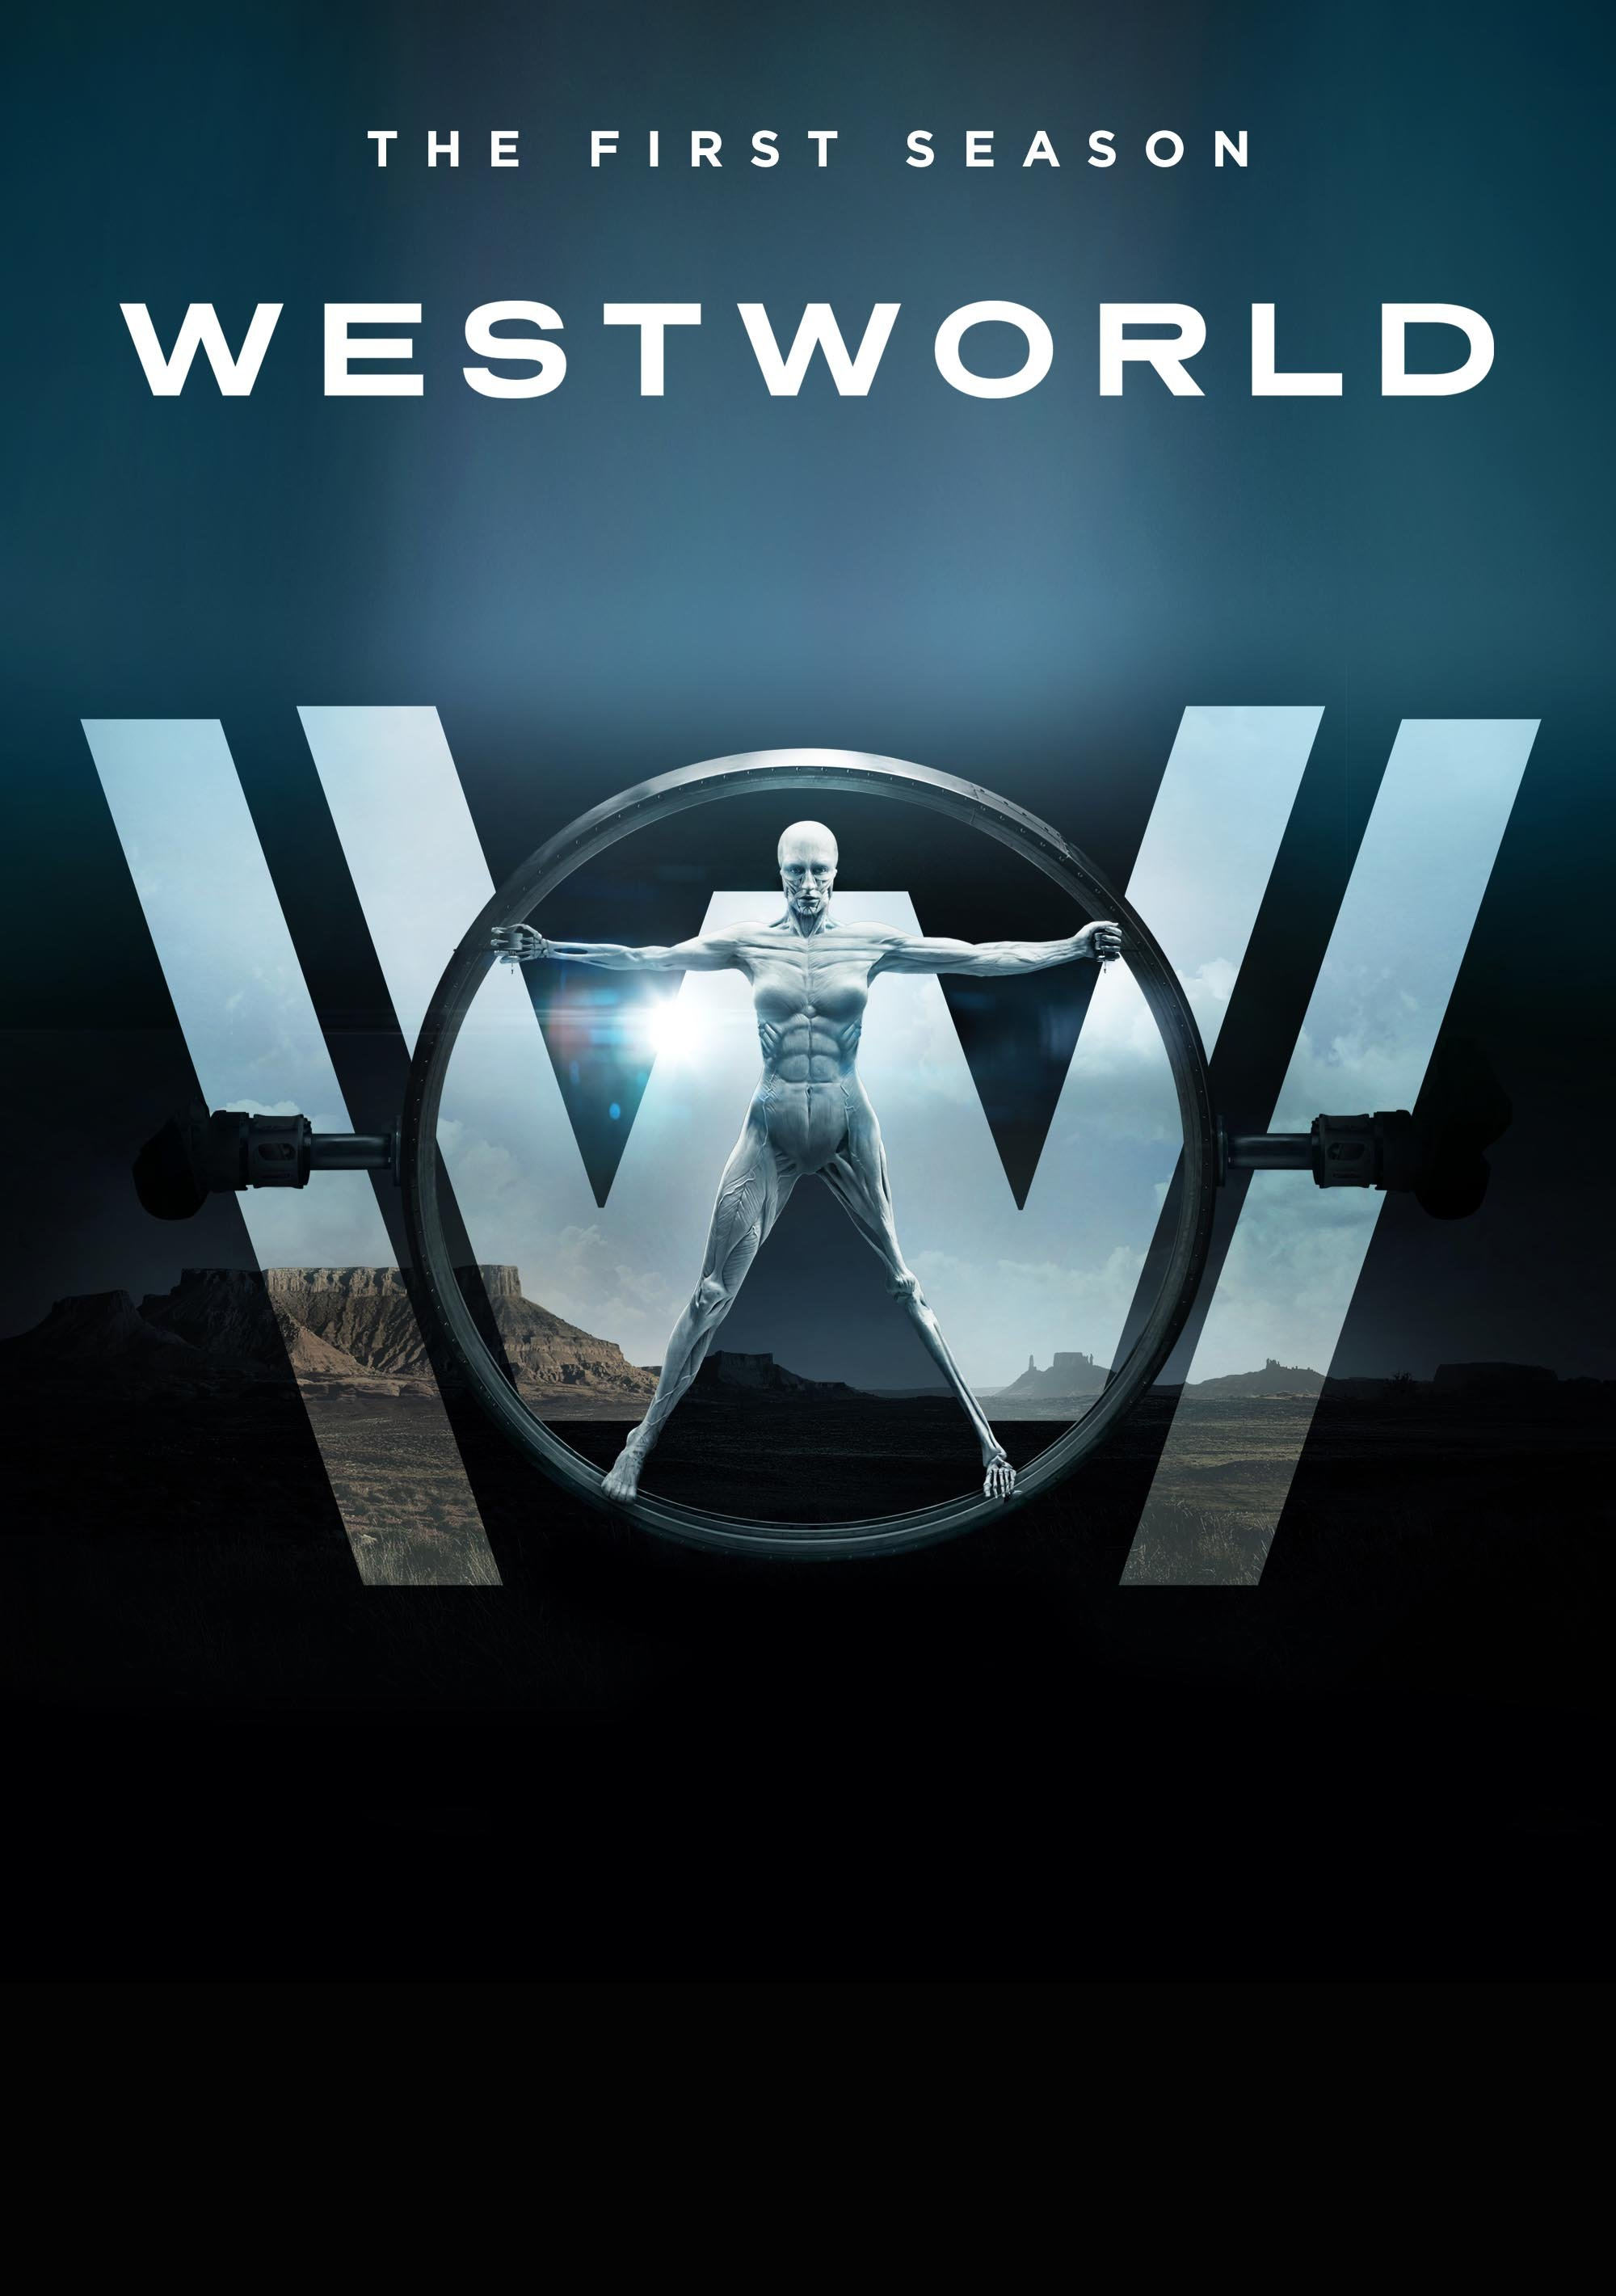 hbo s westworld coming to digital hd on march 6